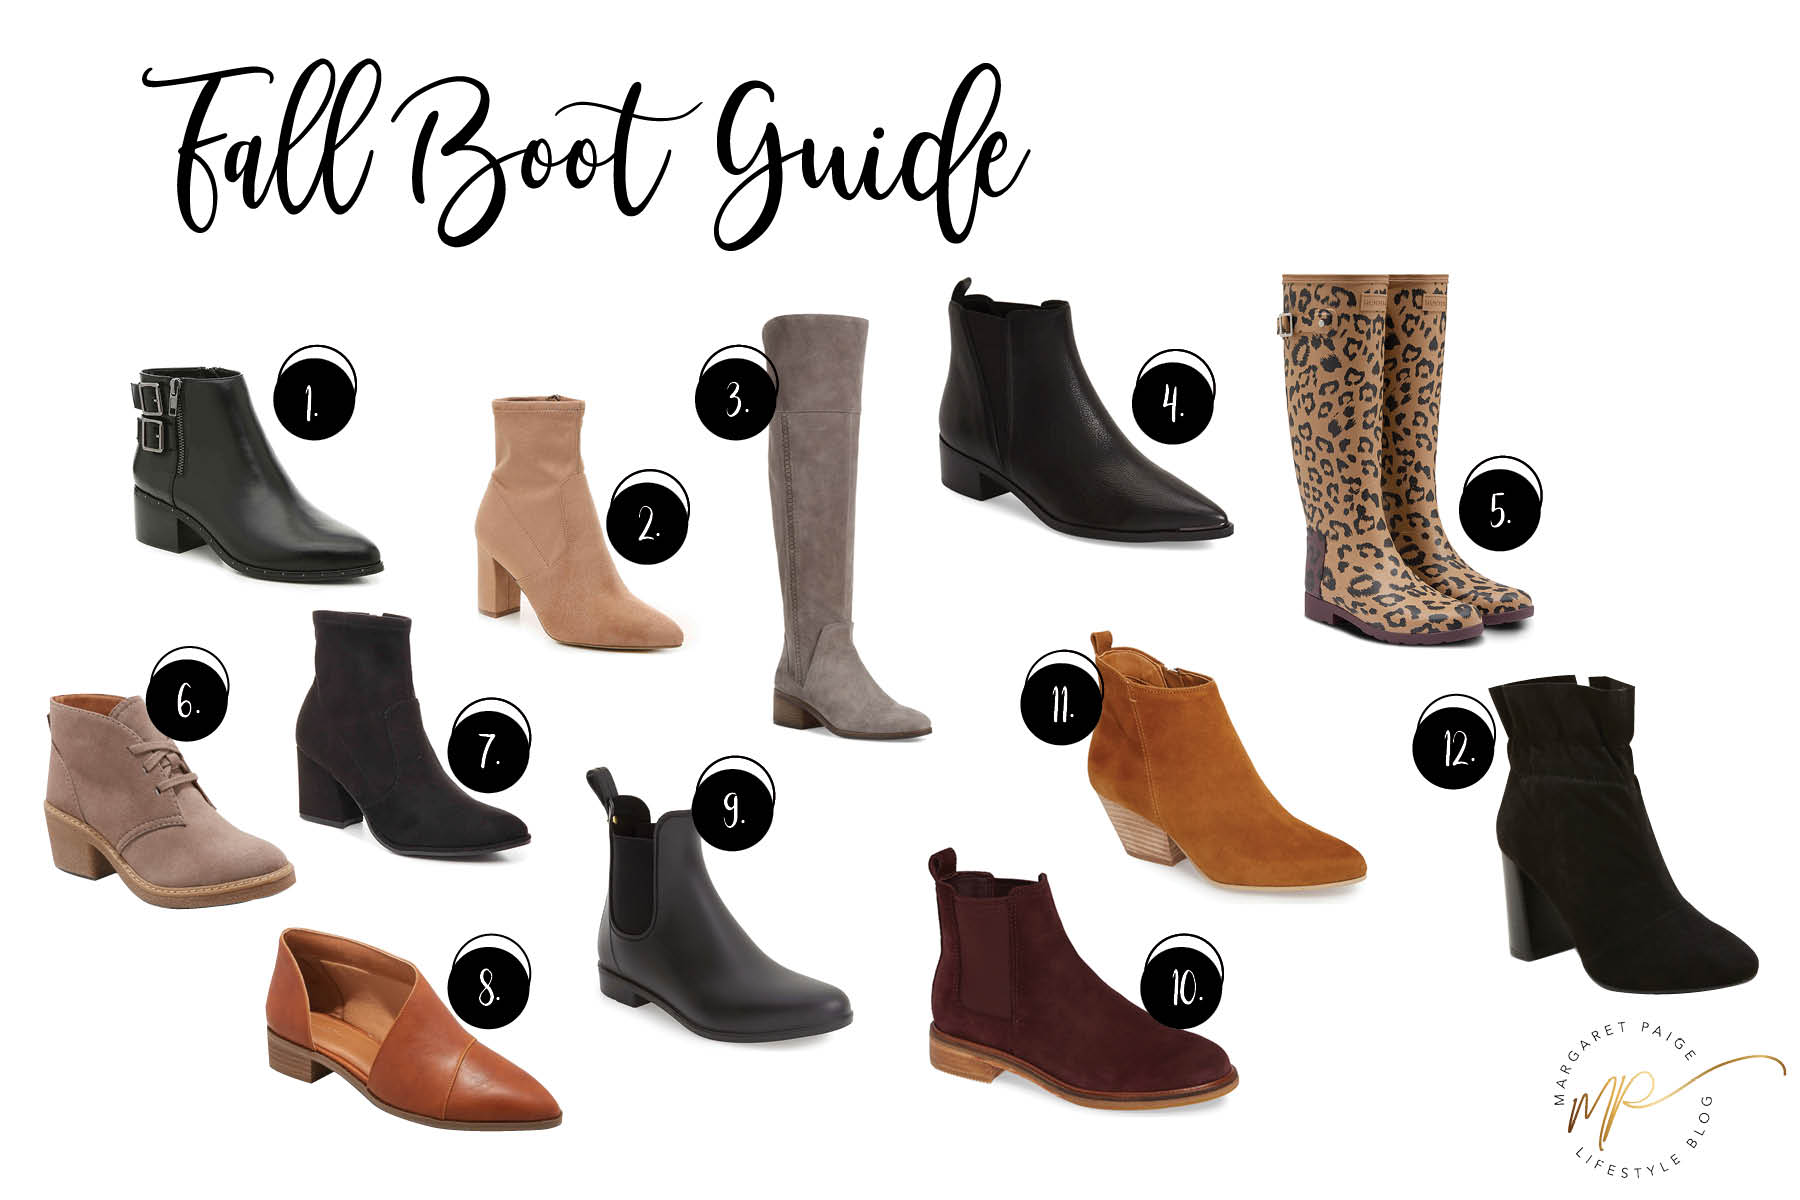 Fall Shoe Guide Graphic